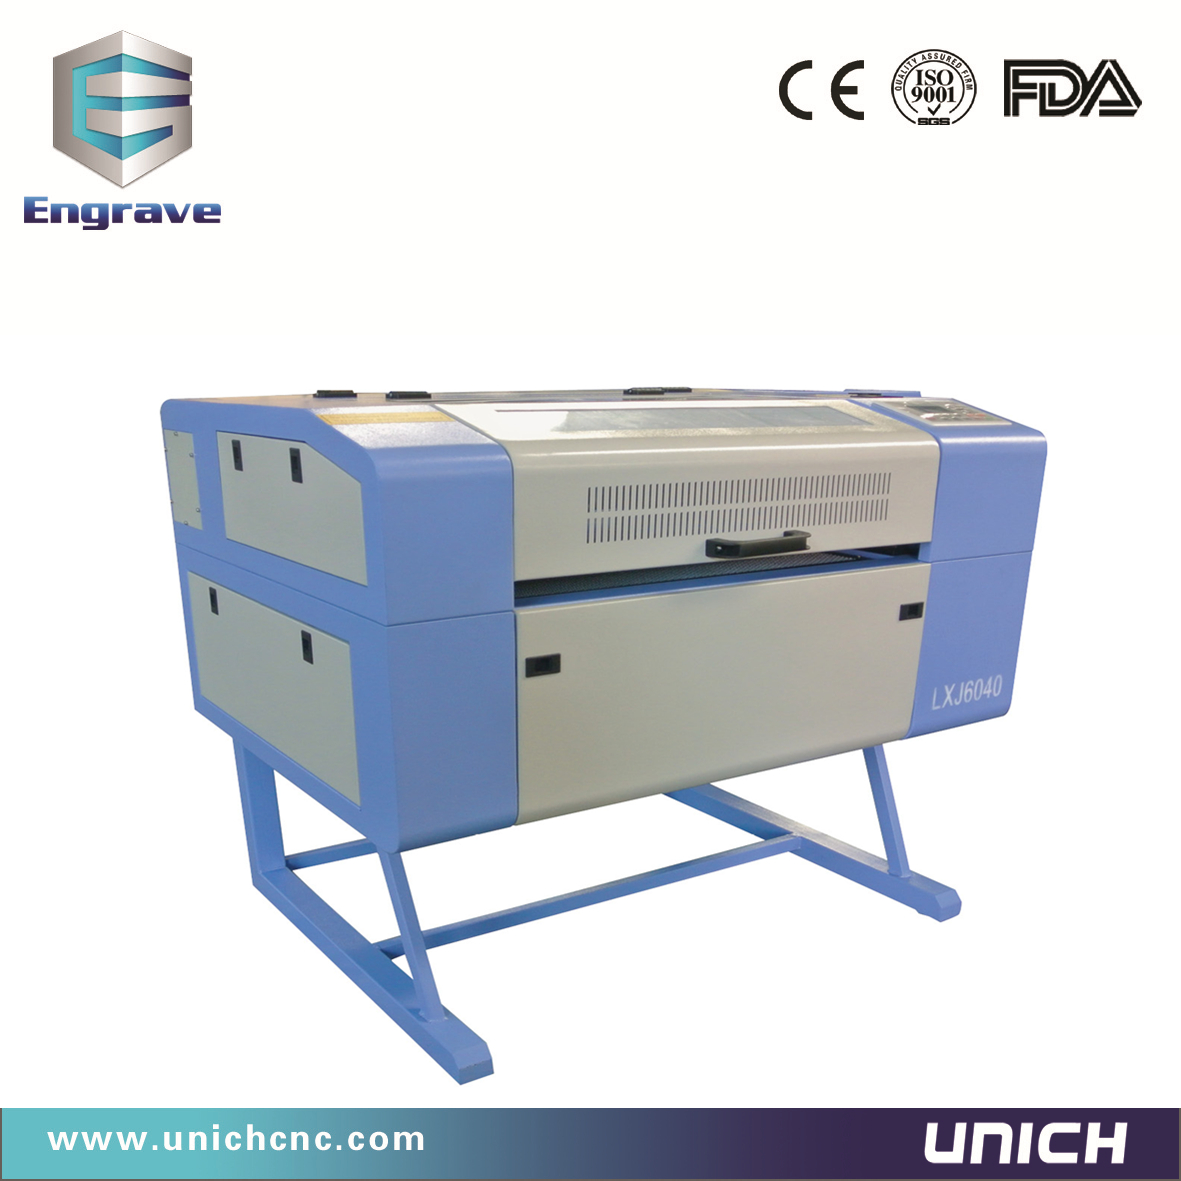 600x400mm Unich laser engraving machine